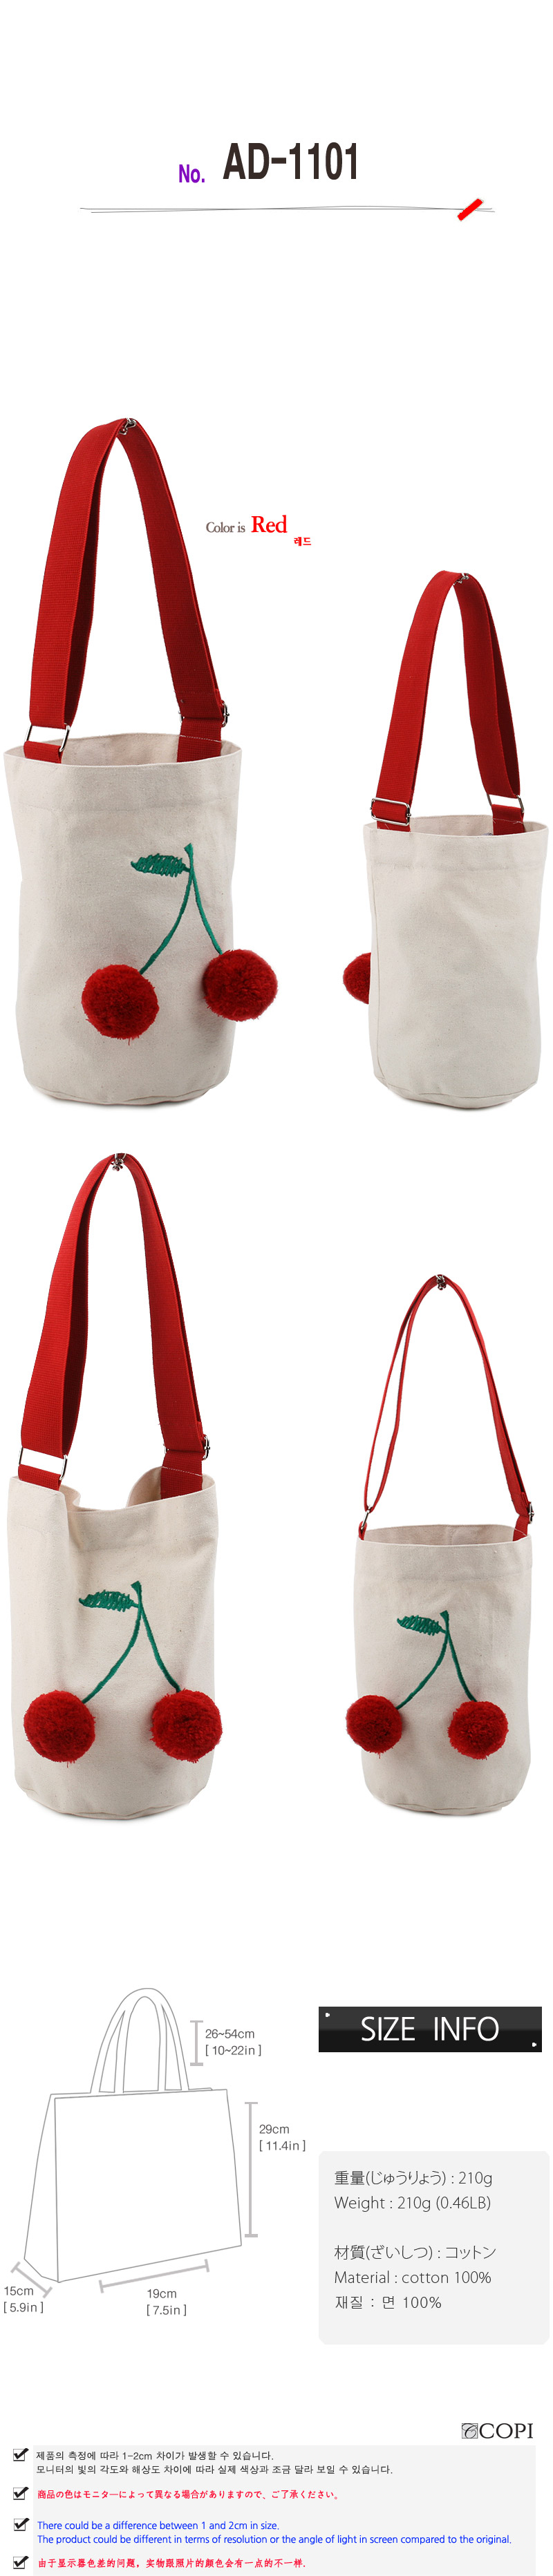 copi handbag no.AD-1101